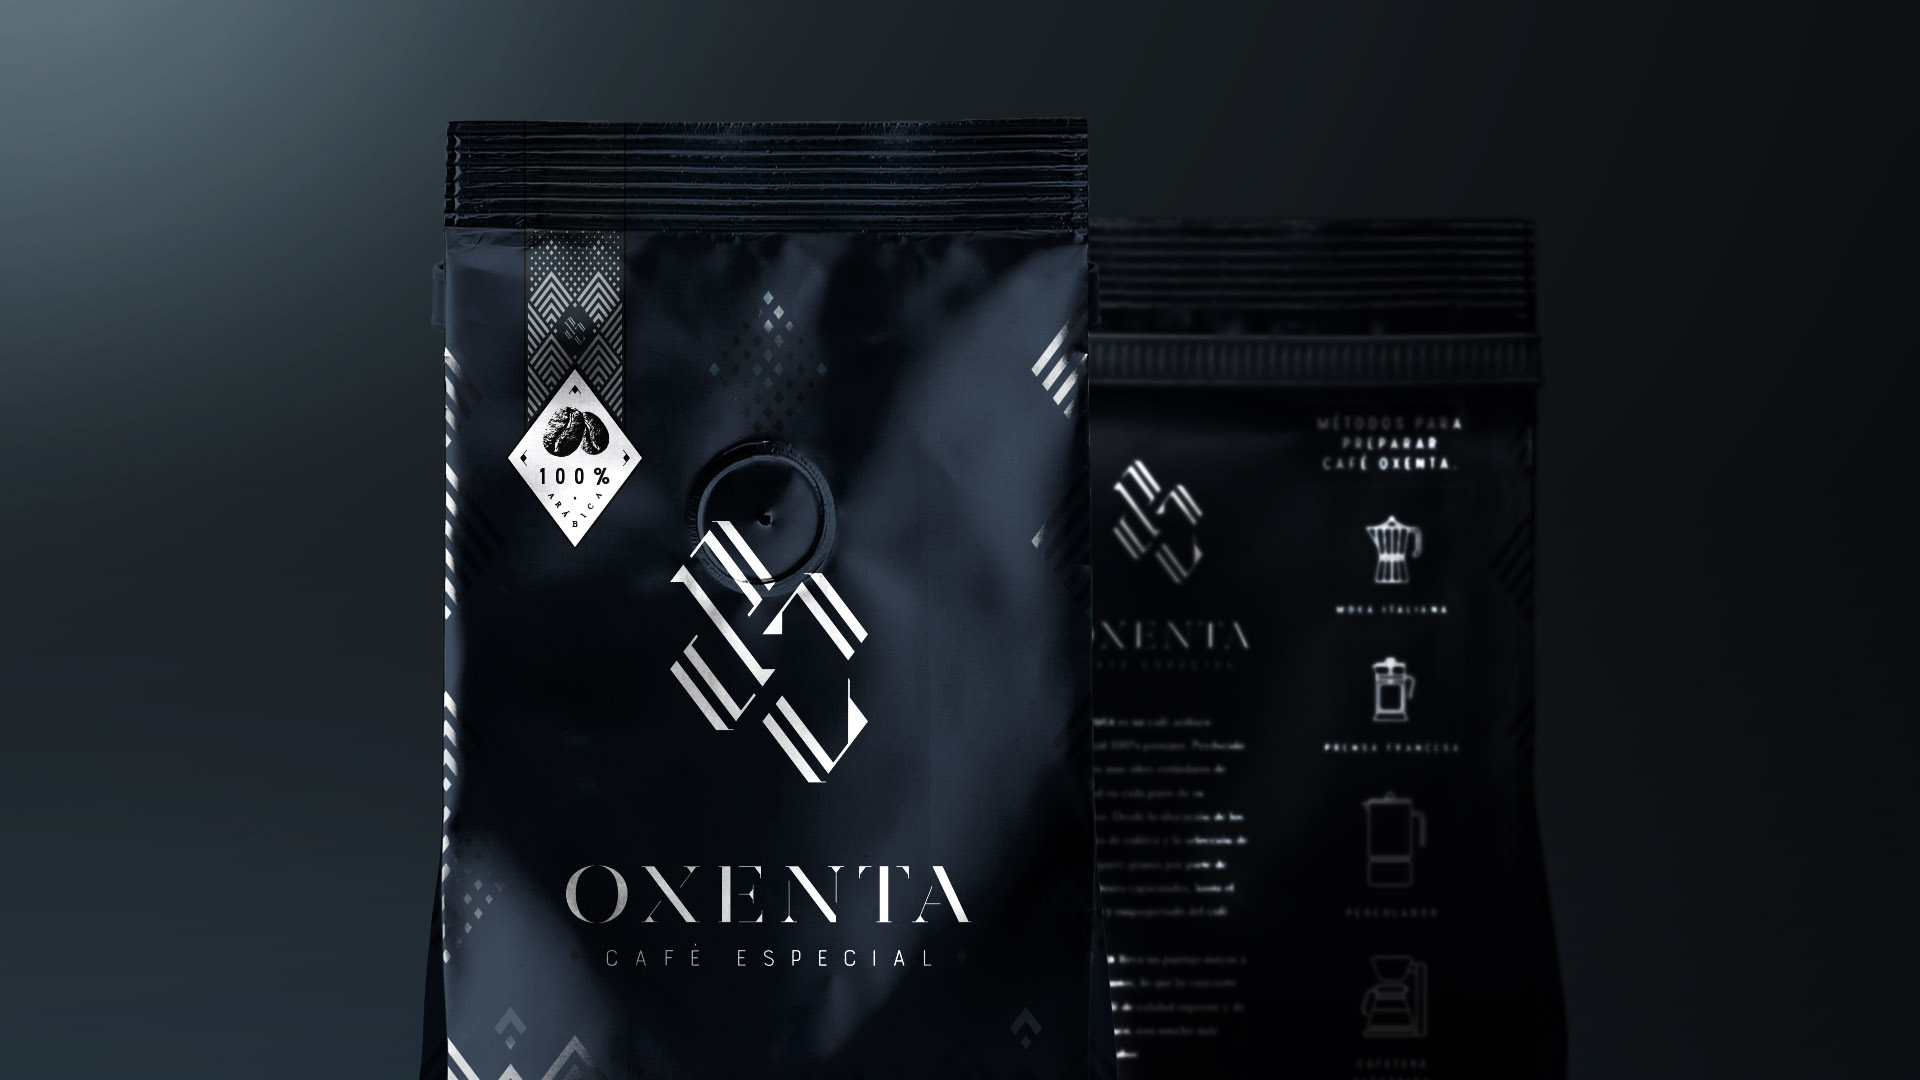 oxenta coffee bag2.jpg